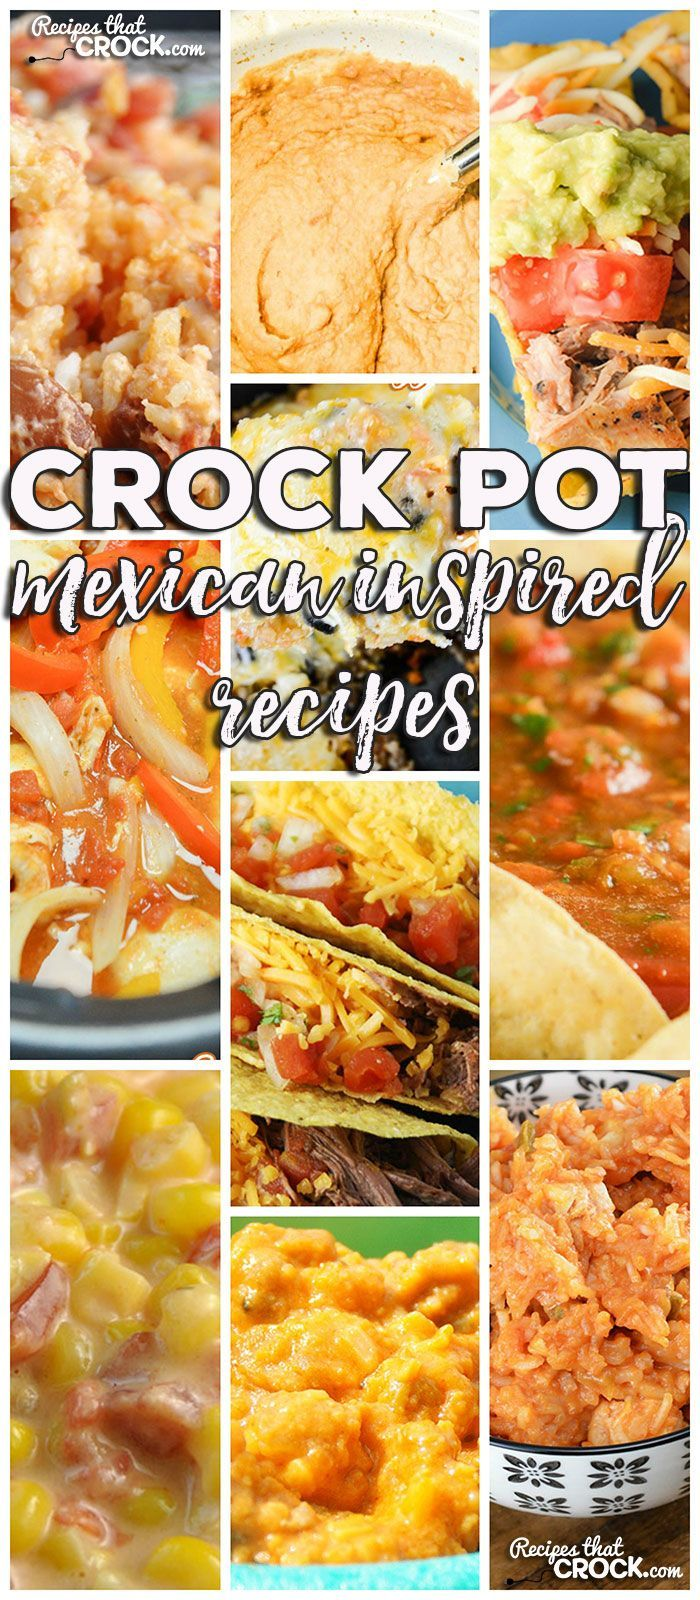 This week for our Friday Favorites we have some yummy Crock Pot Mexican Inspired Recipes like Crock Pot Fiesta Cheesy Corn, Crock Pot Nacho Chicken Rice, Crock Pot Mexican Cheesy Rice, Crock Pot Refried Beans, Crock Pot Pork Carnitas, Crock Pot Chicken Fajitas, Crock Pot Steak Tacos, Crock Pot Mexican Rice Veggie Bake, Crock Pot Chicken Enchilada Rollups, Crock Pot Taquito Bar, Homemade Crock Pot Salsa and Crock Pot Fiesta Cheese Dip!